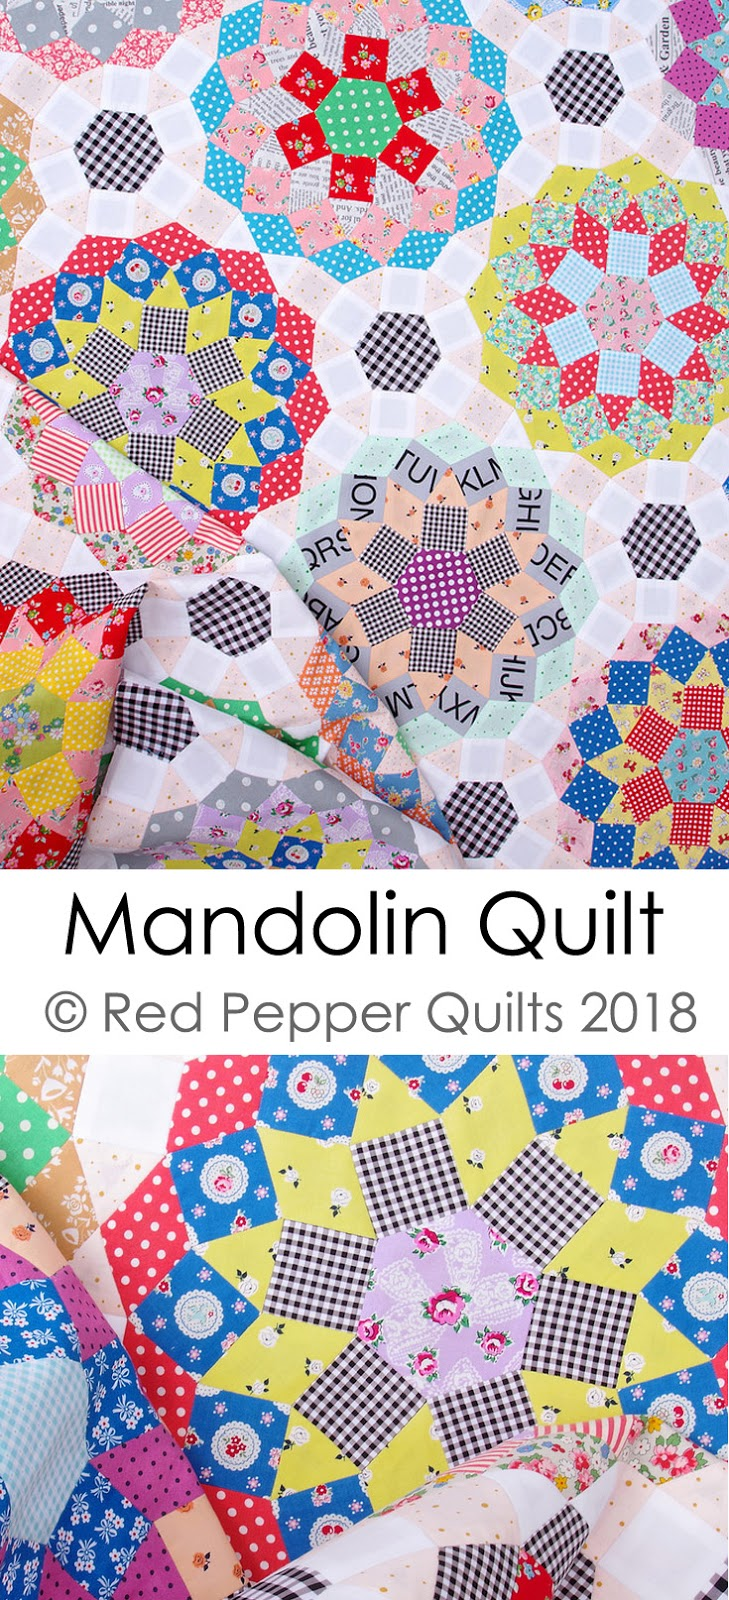 English Paper Pieced - Mandolin Quilt by Rita Hodge | © Red Pepper Quilts 2018  #redpepperquilts #englishpaperpiecing #englishpaperpieced #patchworkandquilting #patchwork #slowsewing